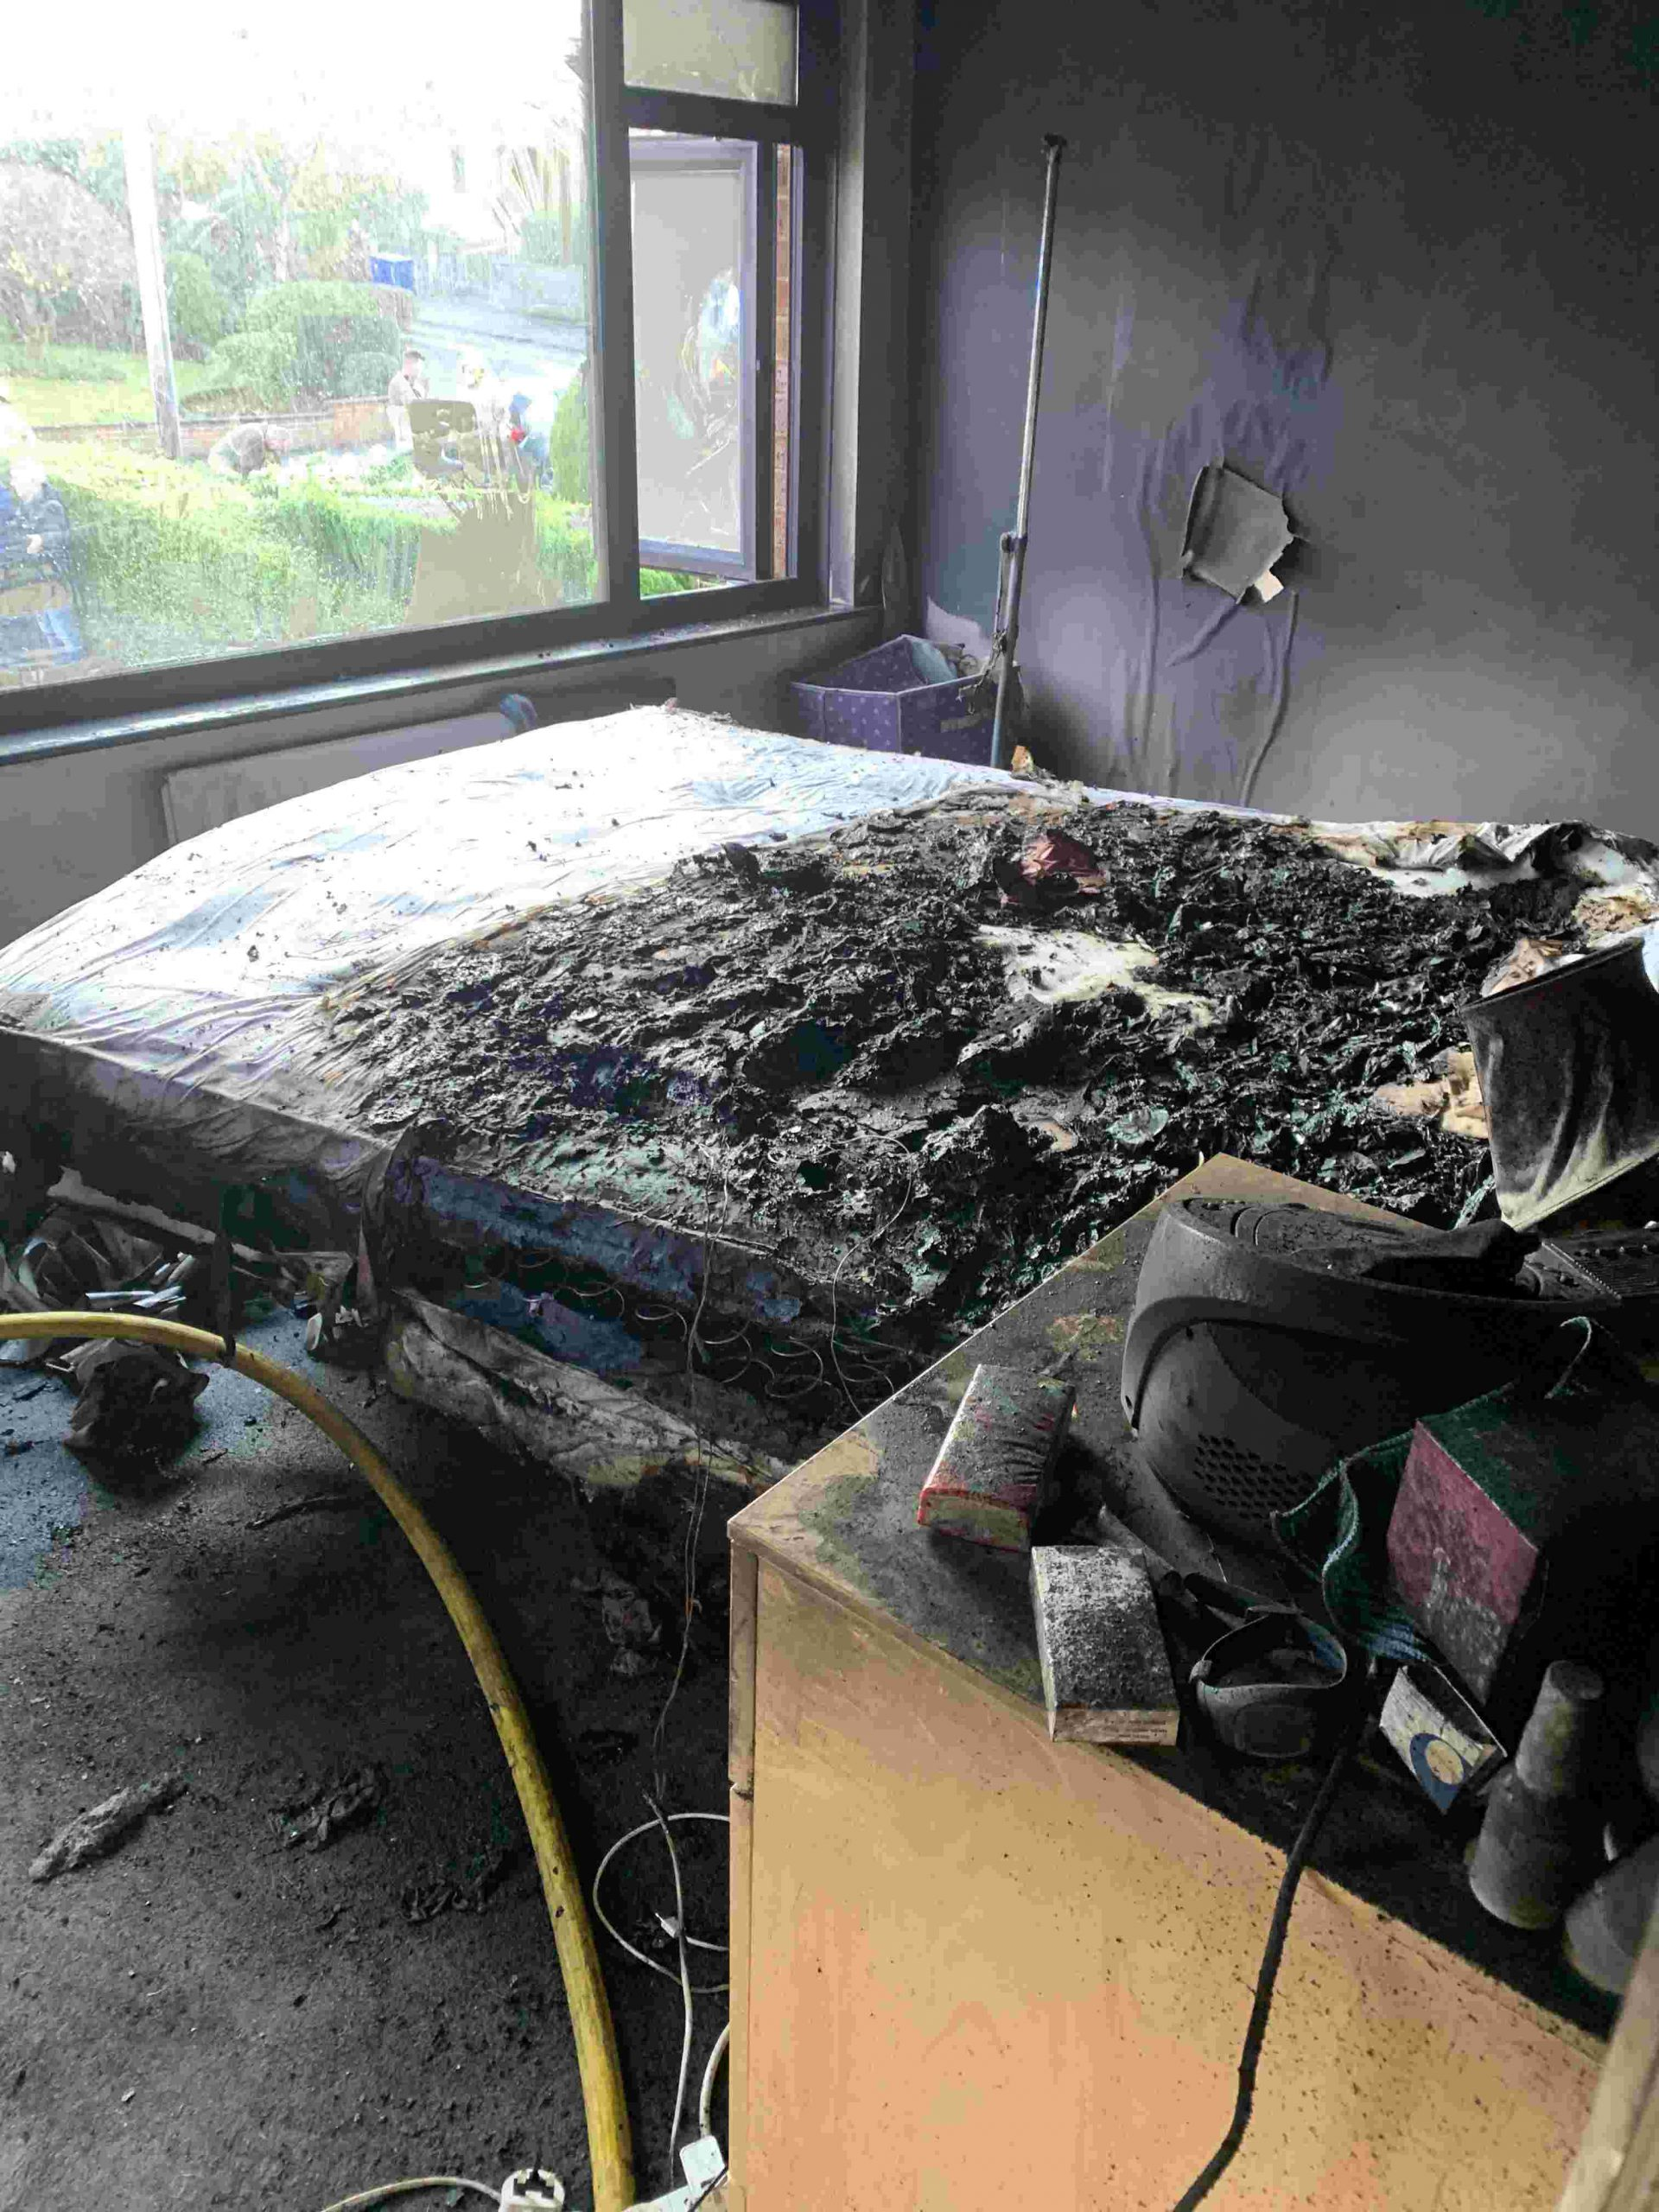 A fire caused by an electric blanket